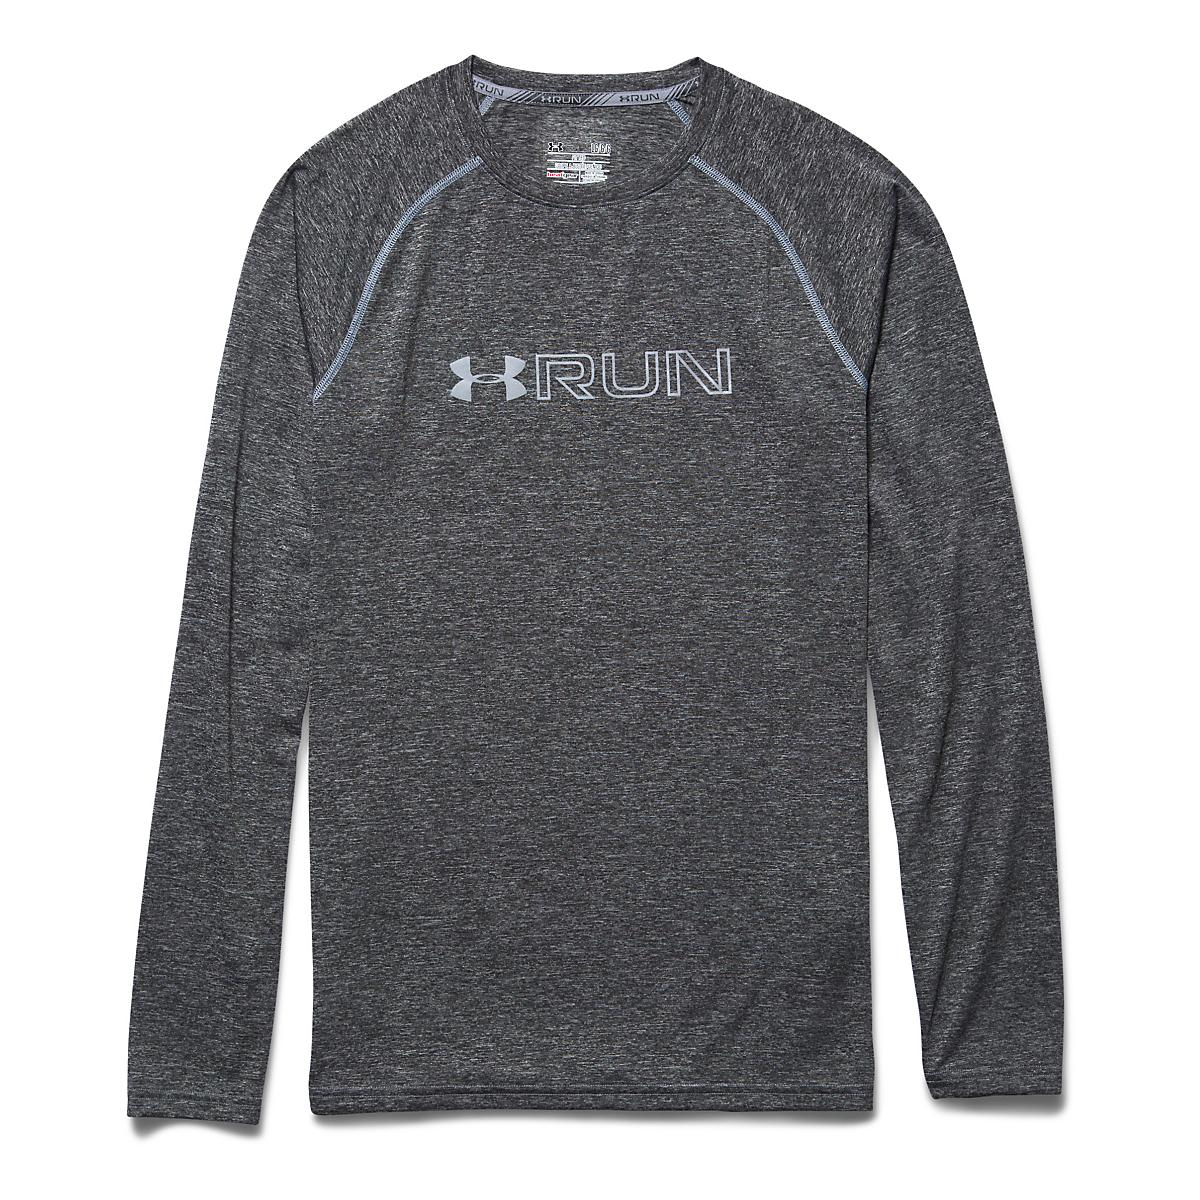 Men's Under Armour�Run Twist Longsleeve T